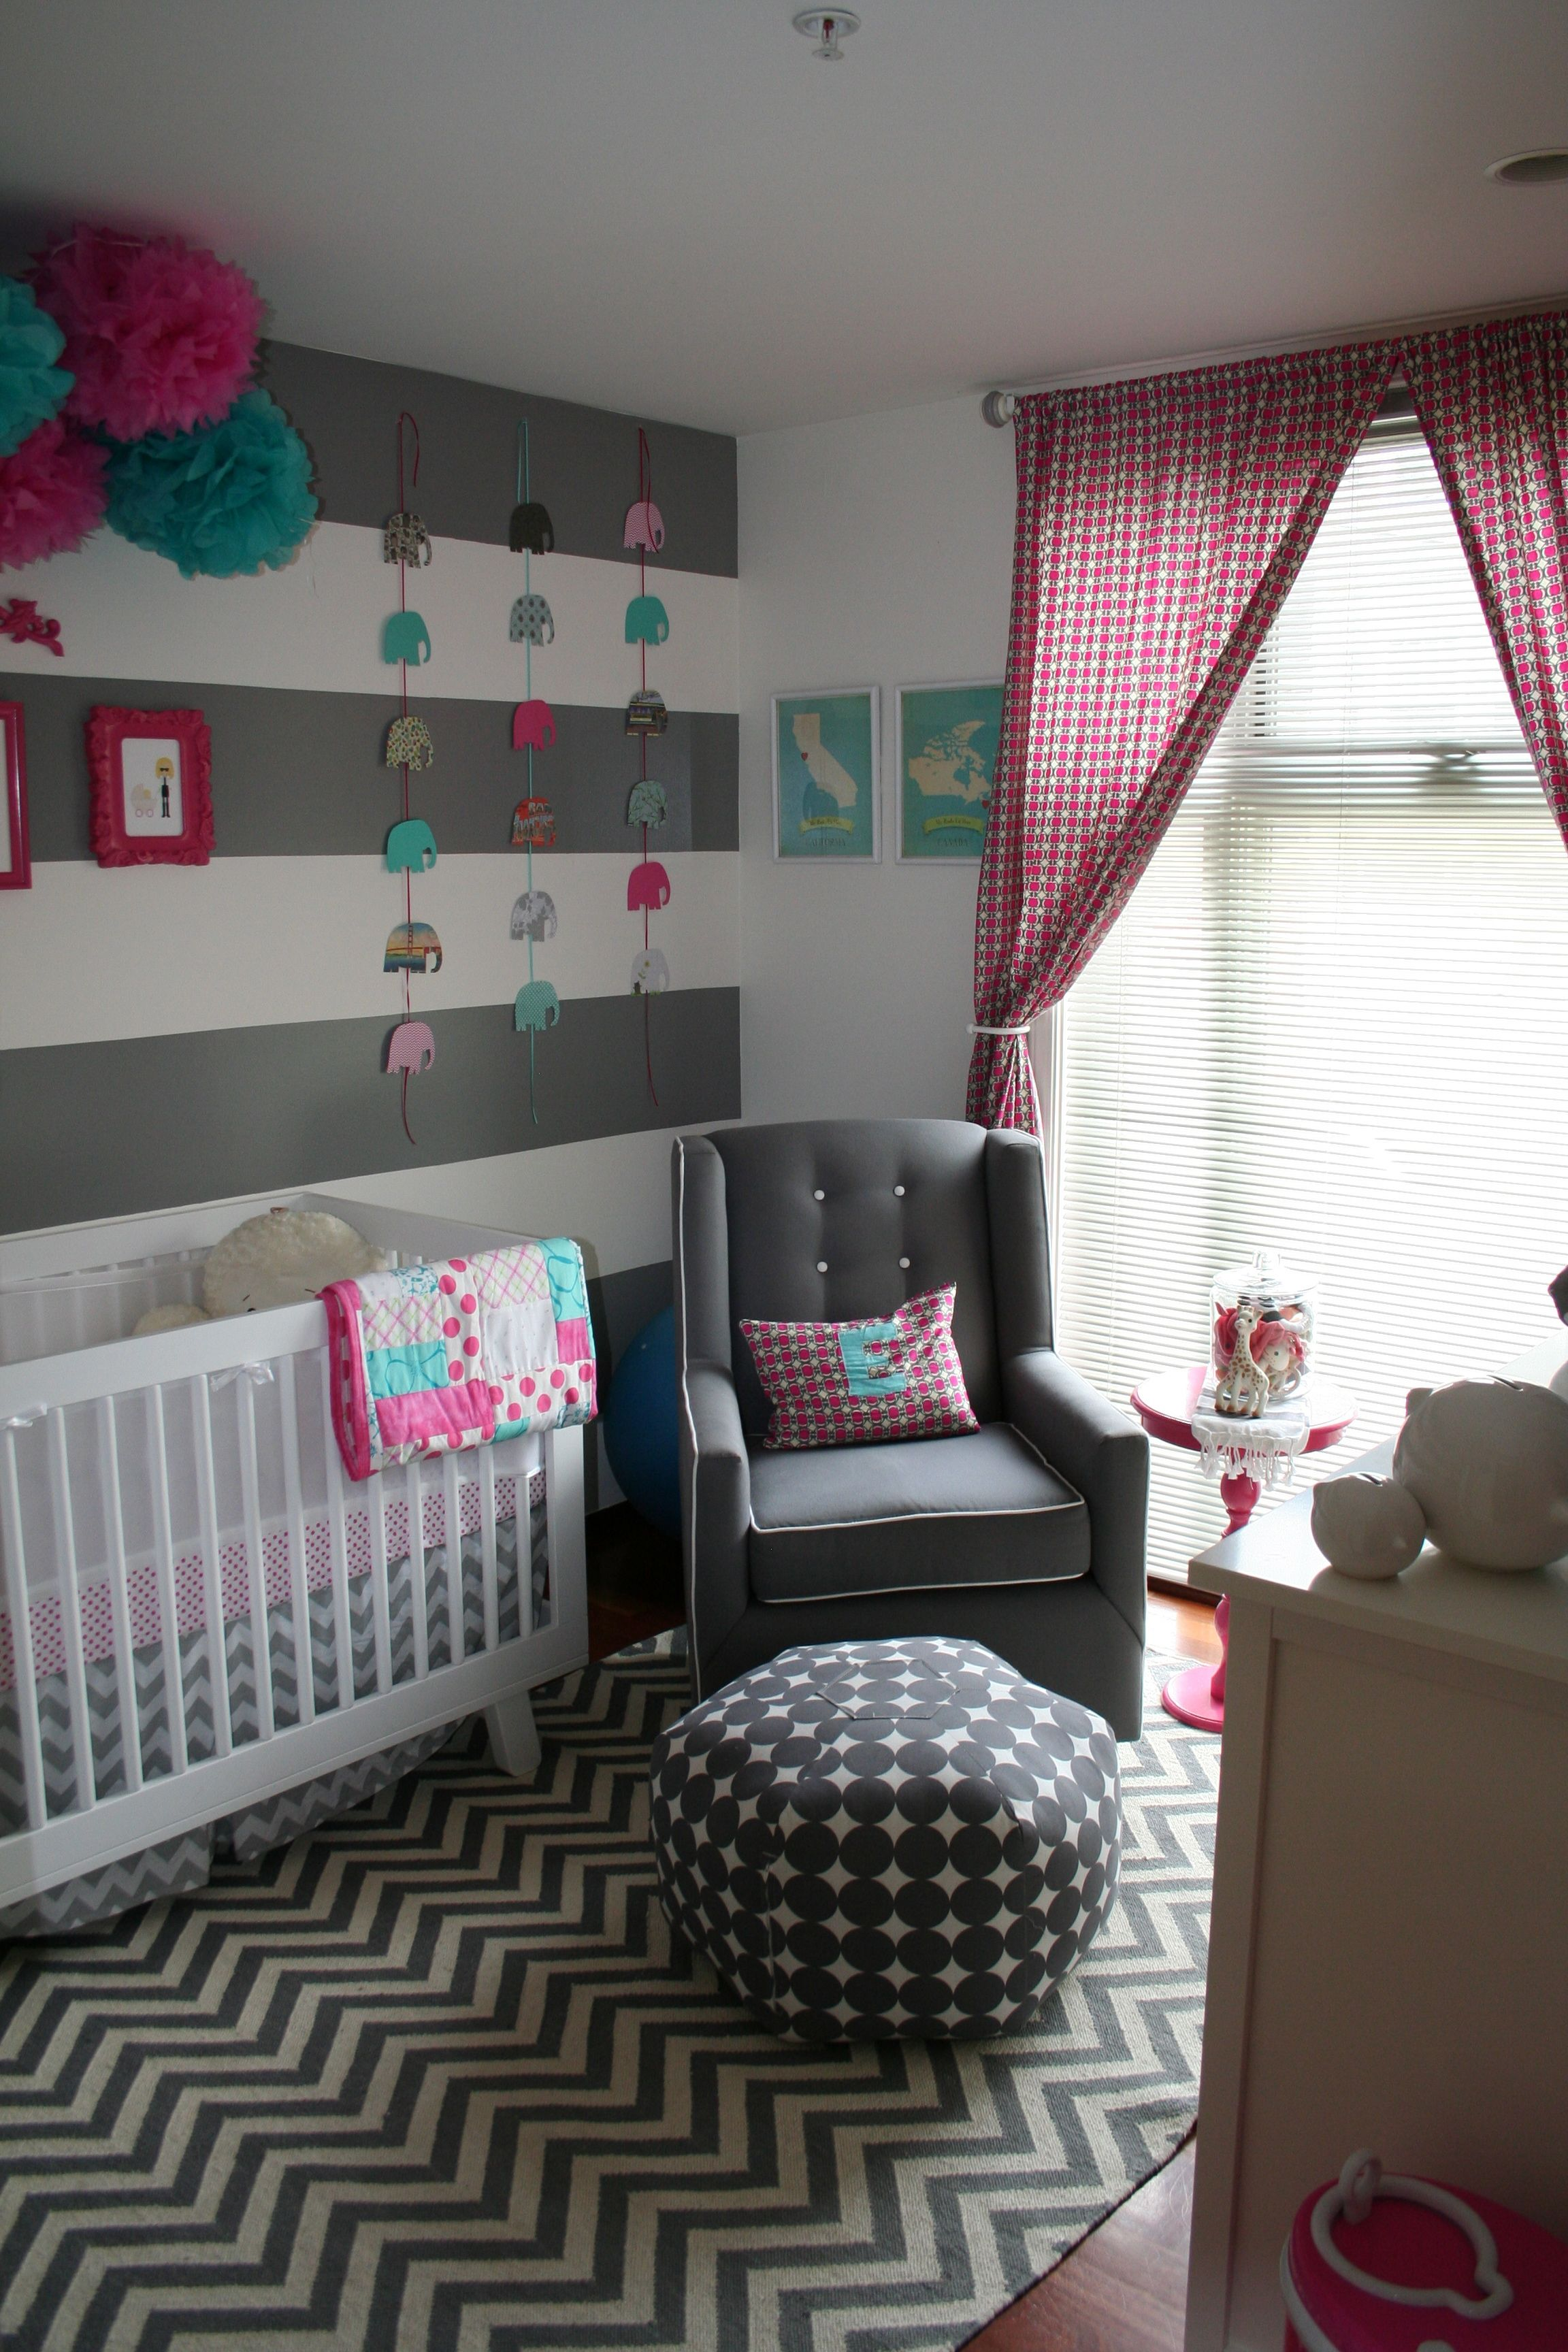 Turquoise and grey bedroom - Cute Decor Ideas For A Girls Room Or Keep Grey And Add Pops Of Purple And